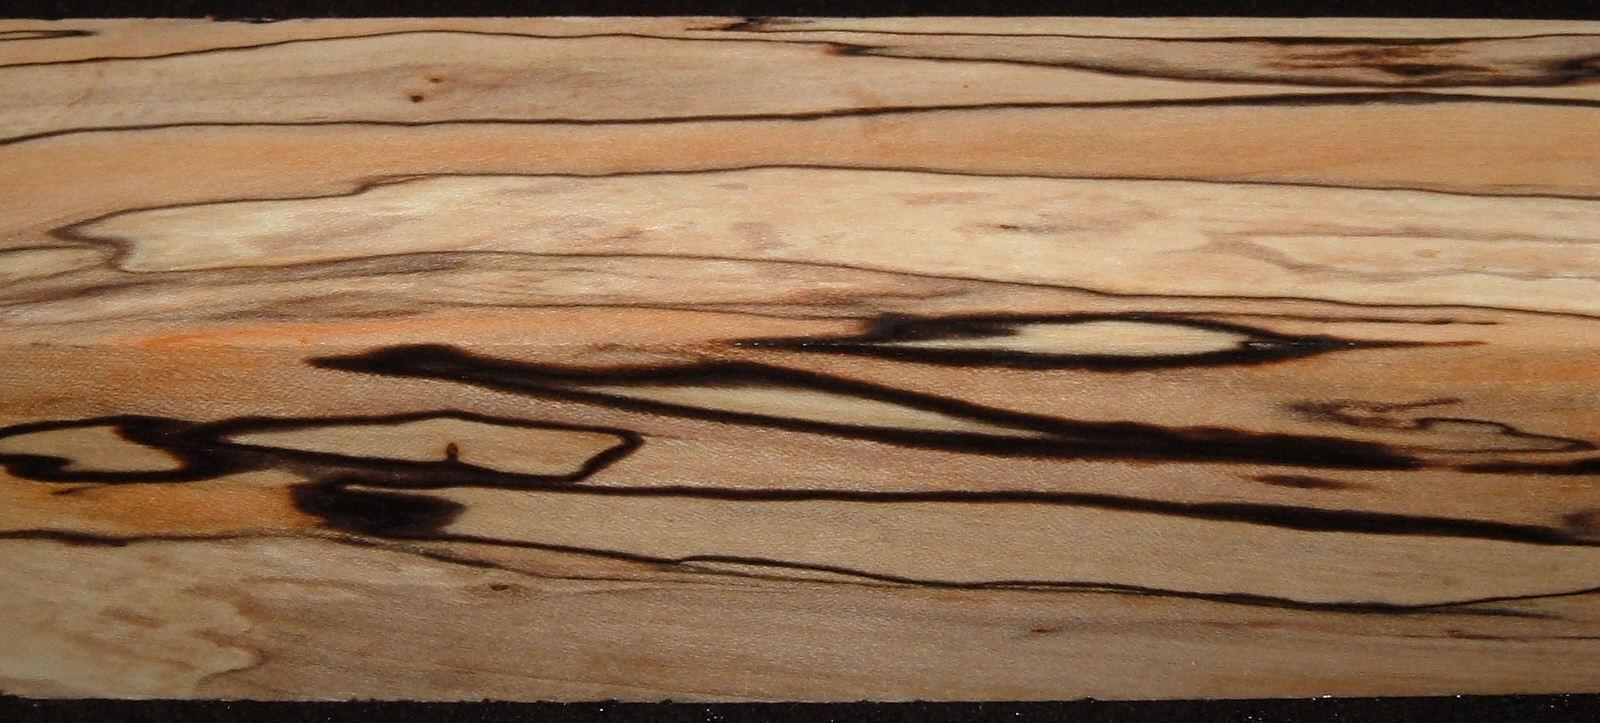 Z325, 1-3/4x1-3/4x7-1/4 ,Clear, Spalted Maple Dyed Stabilized, wood turning block